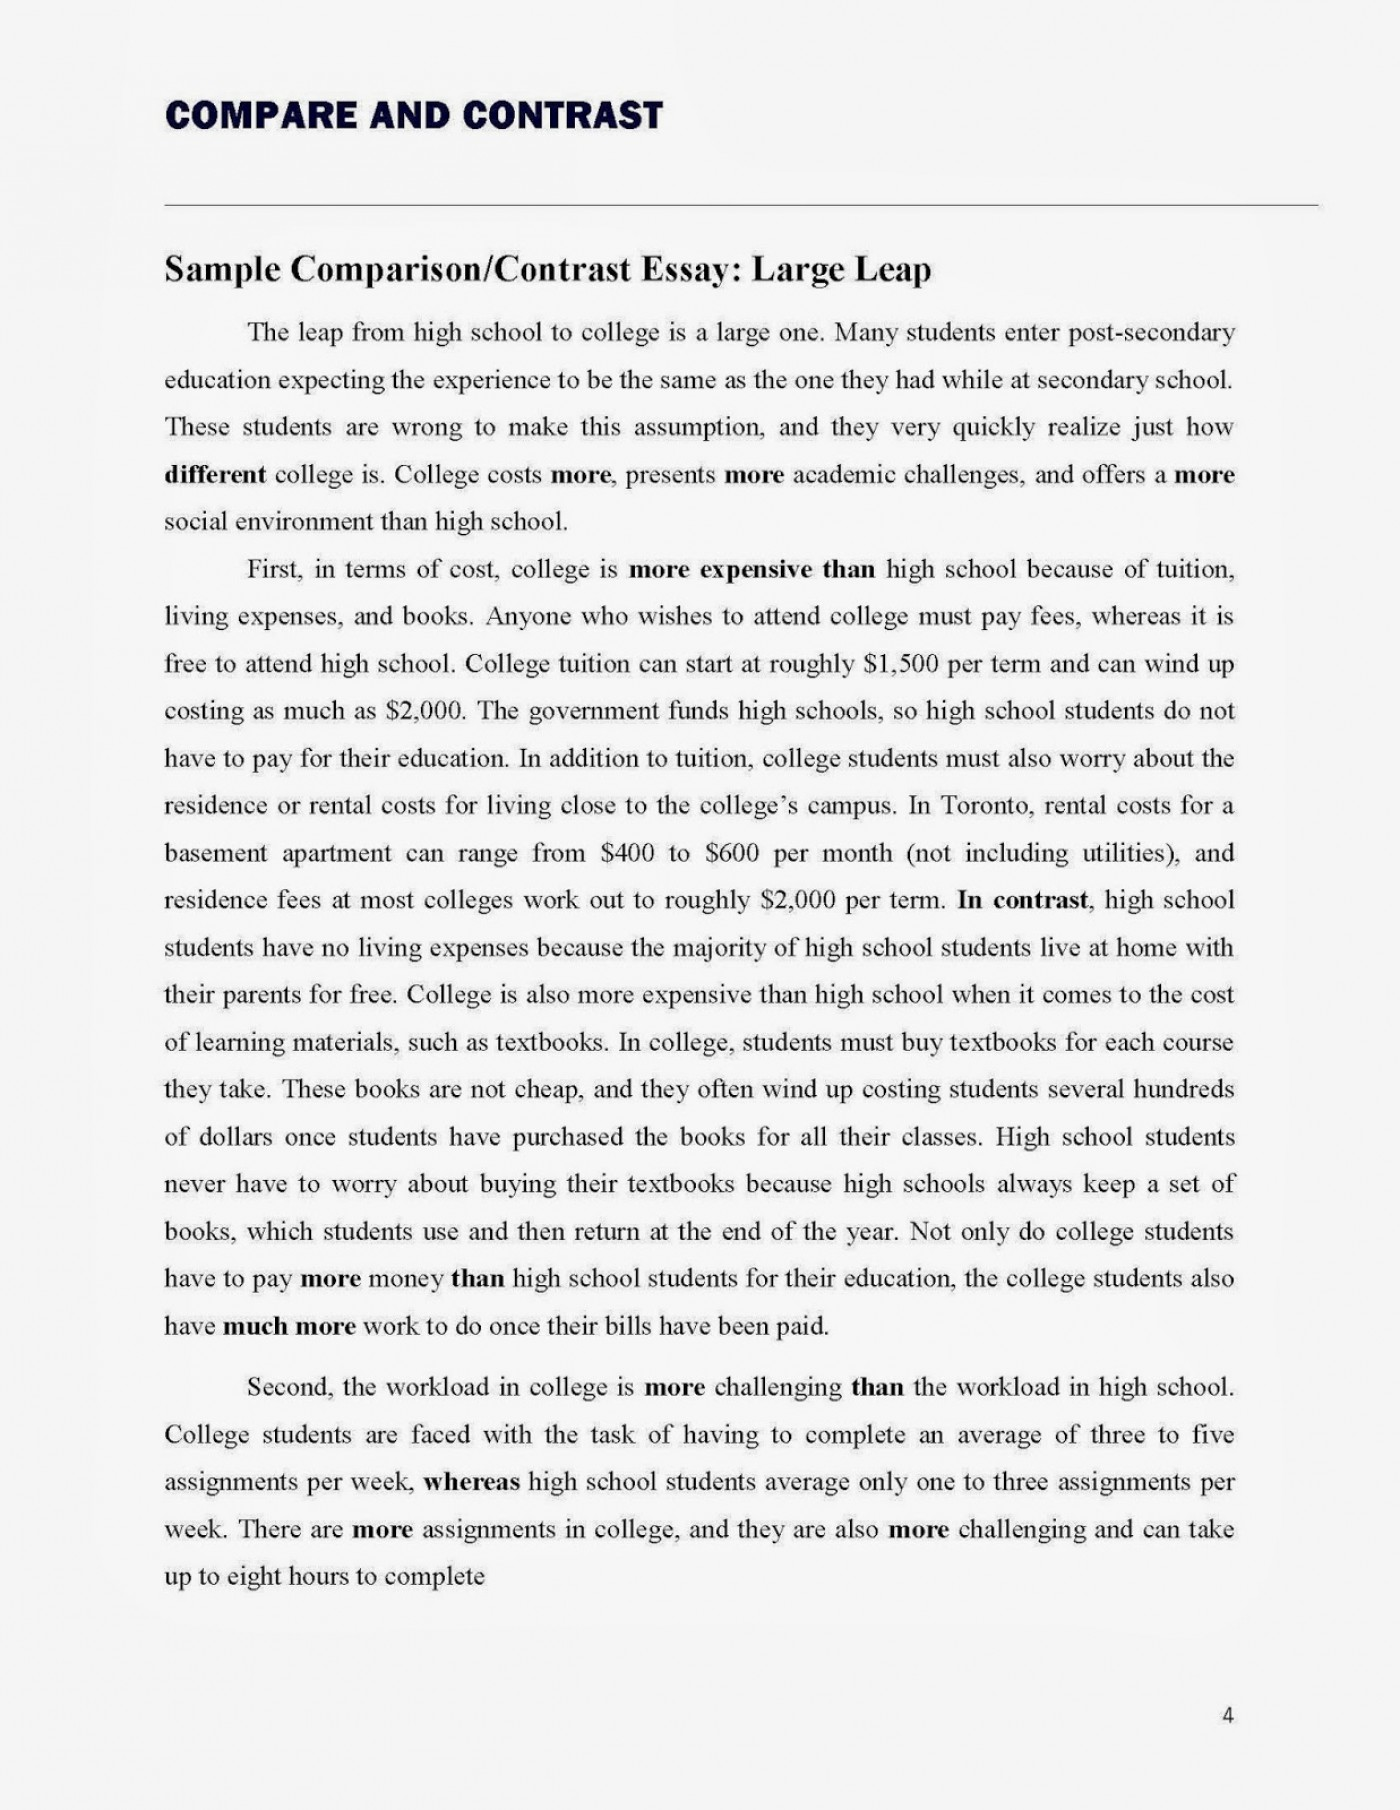 011 Good Compare And Contrast Essay Compare20and20contrast20essay Page 4 Unbelievable Title Generator Examples High School Titles 1400